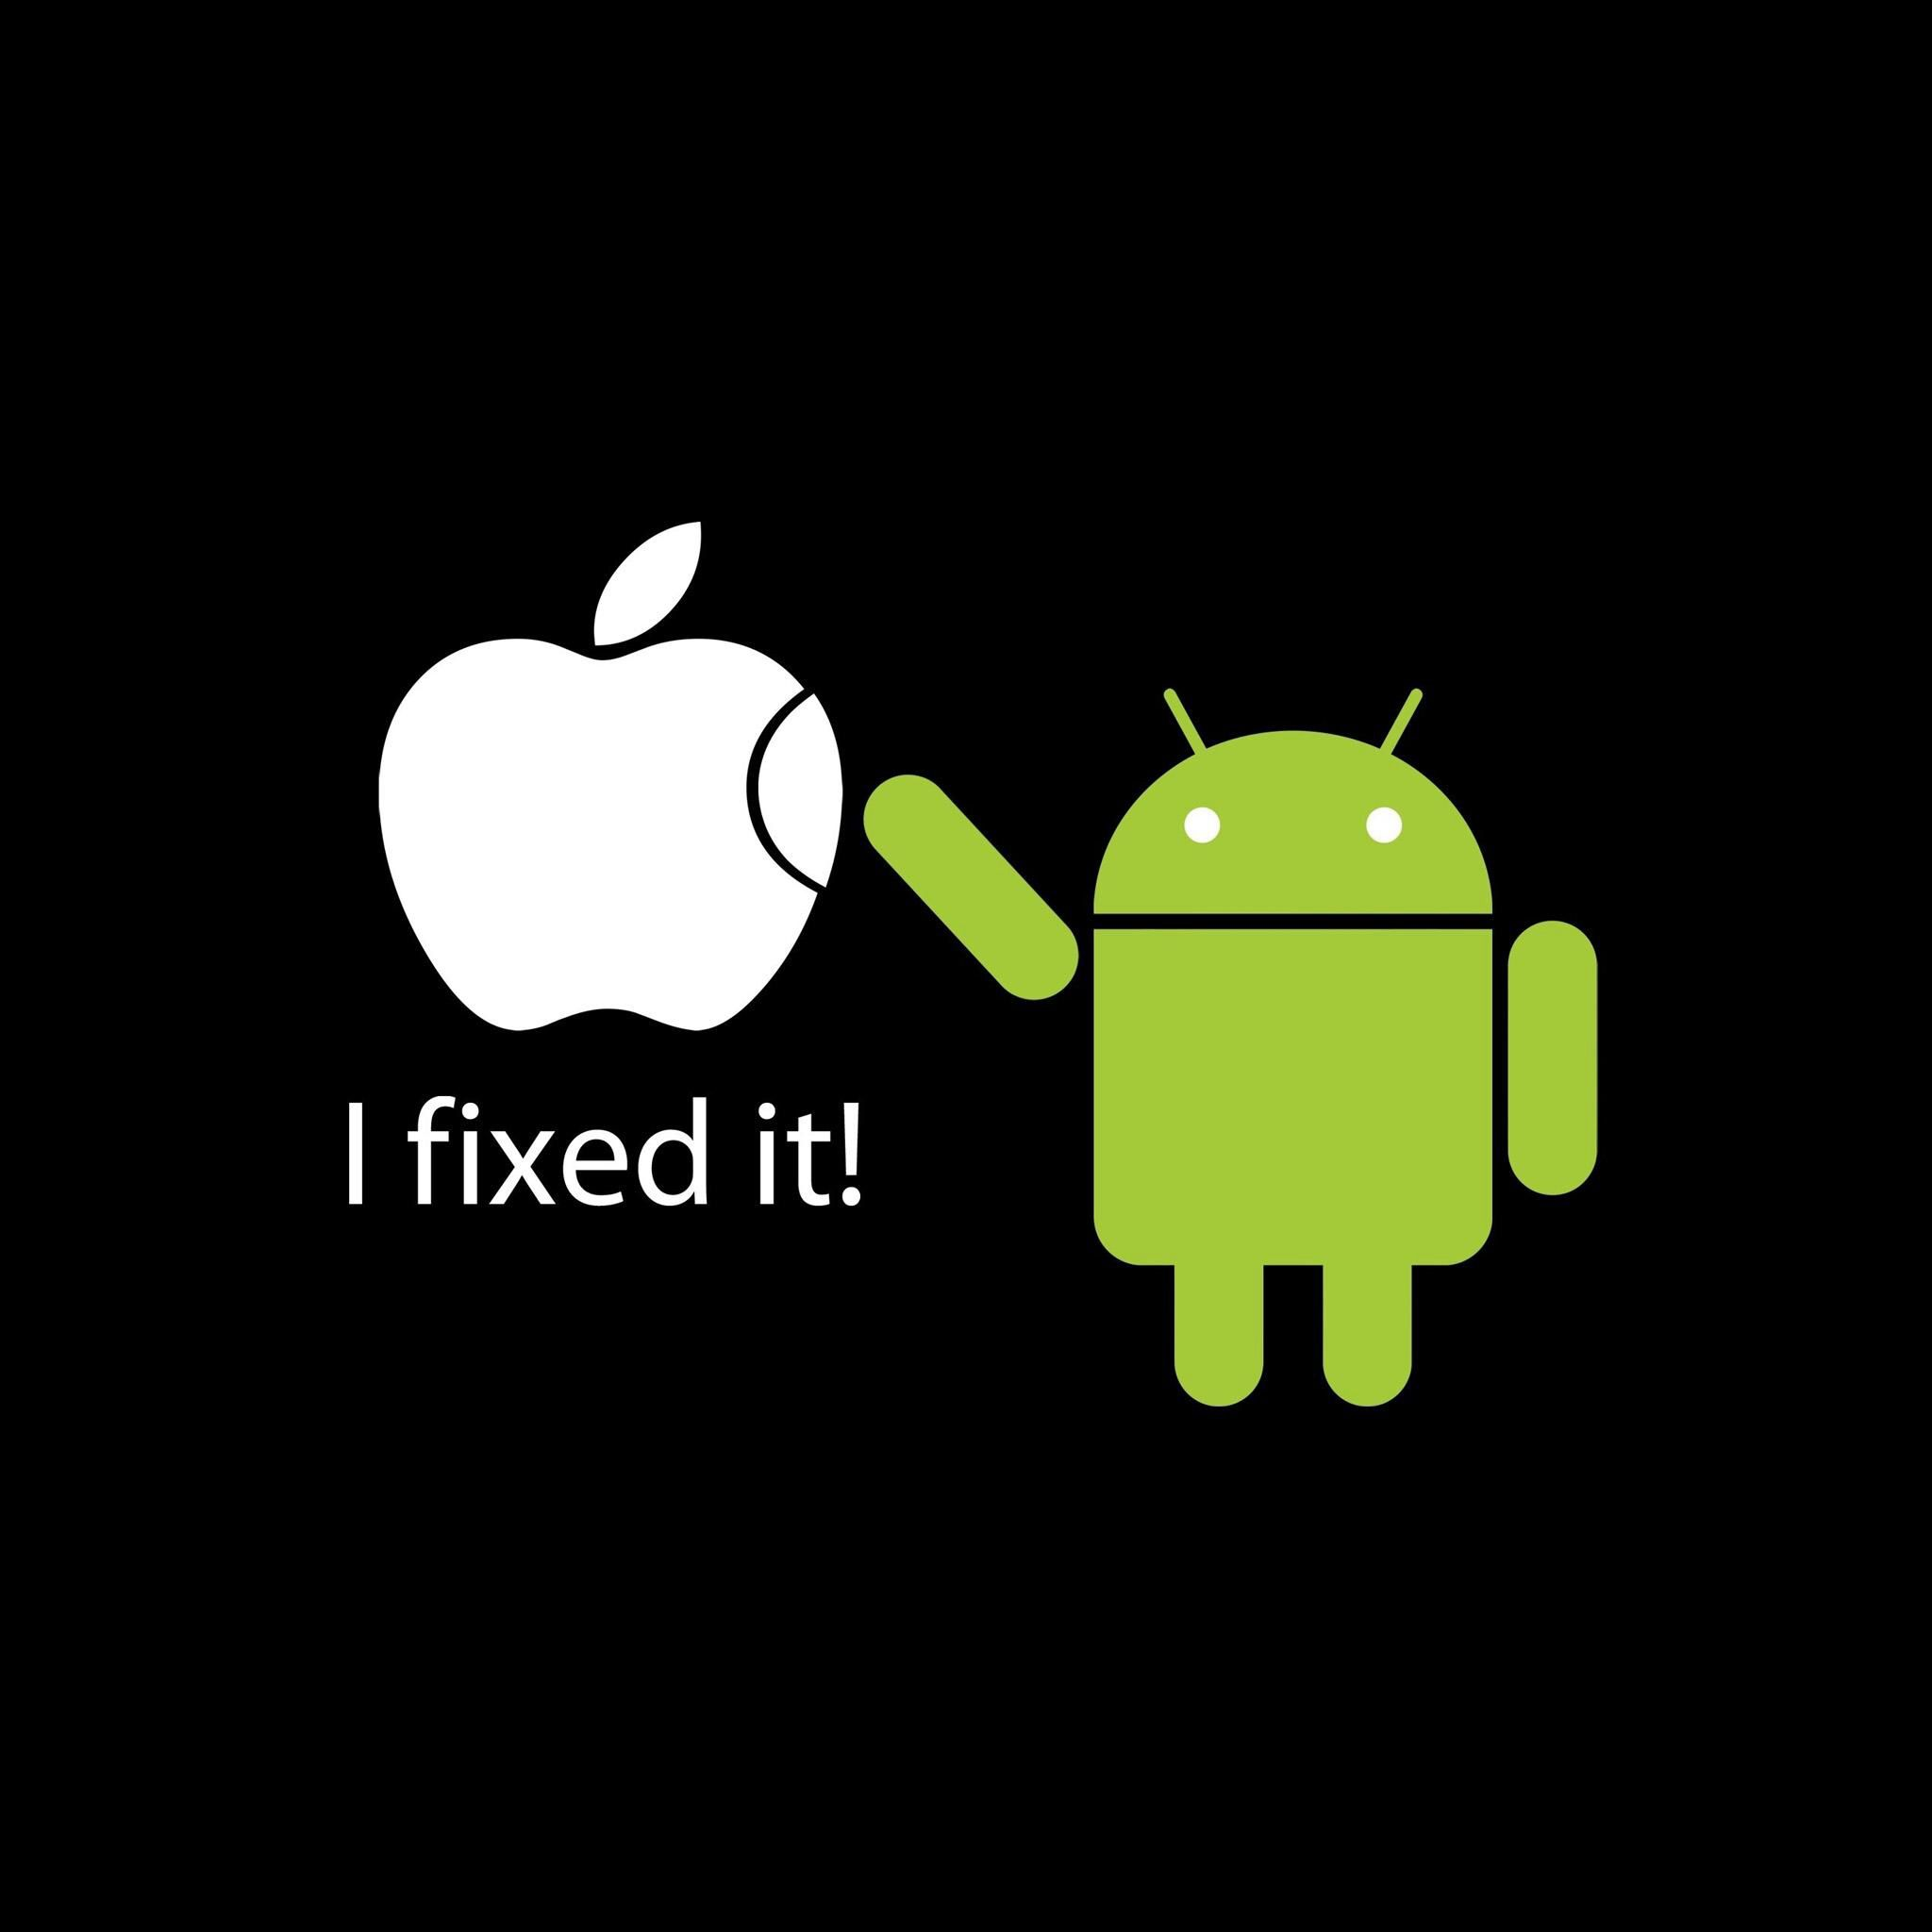 funny hd wallpapers for mac wallpaper